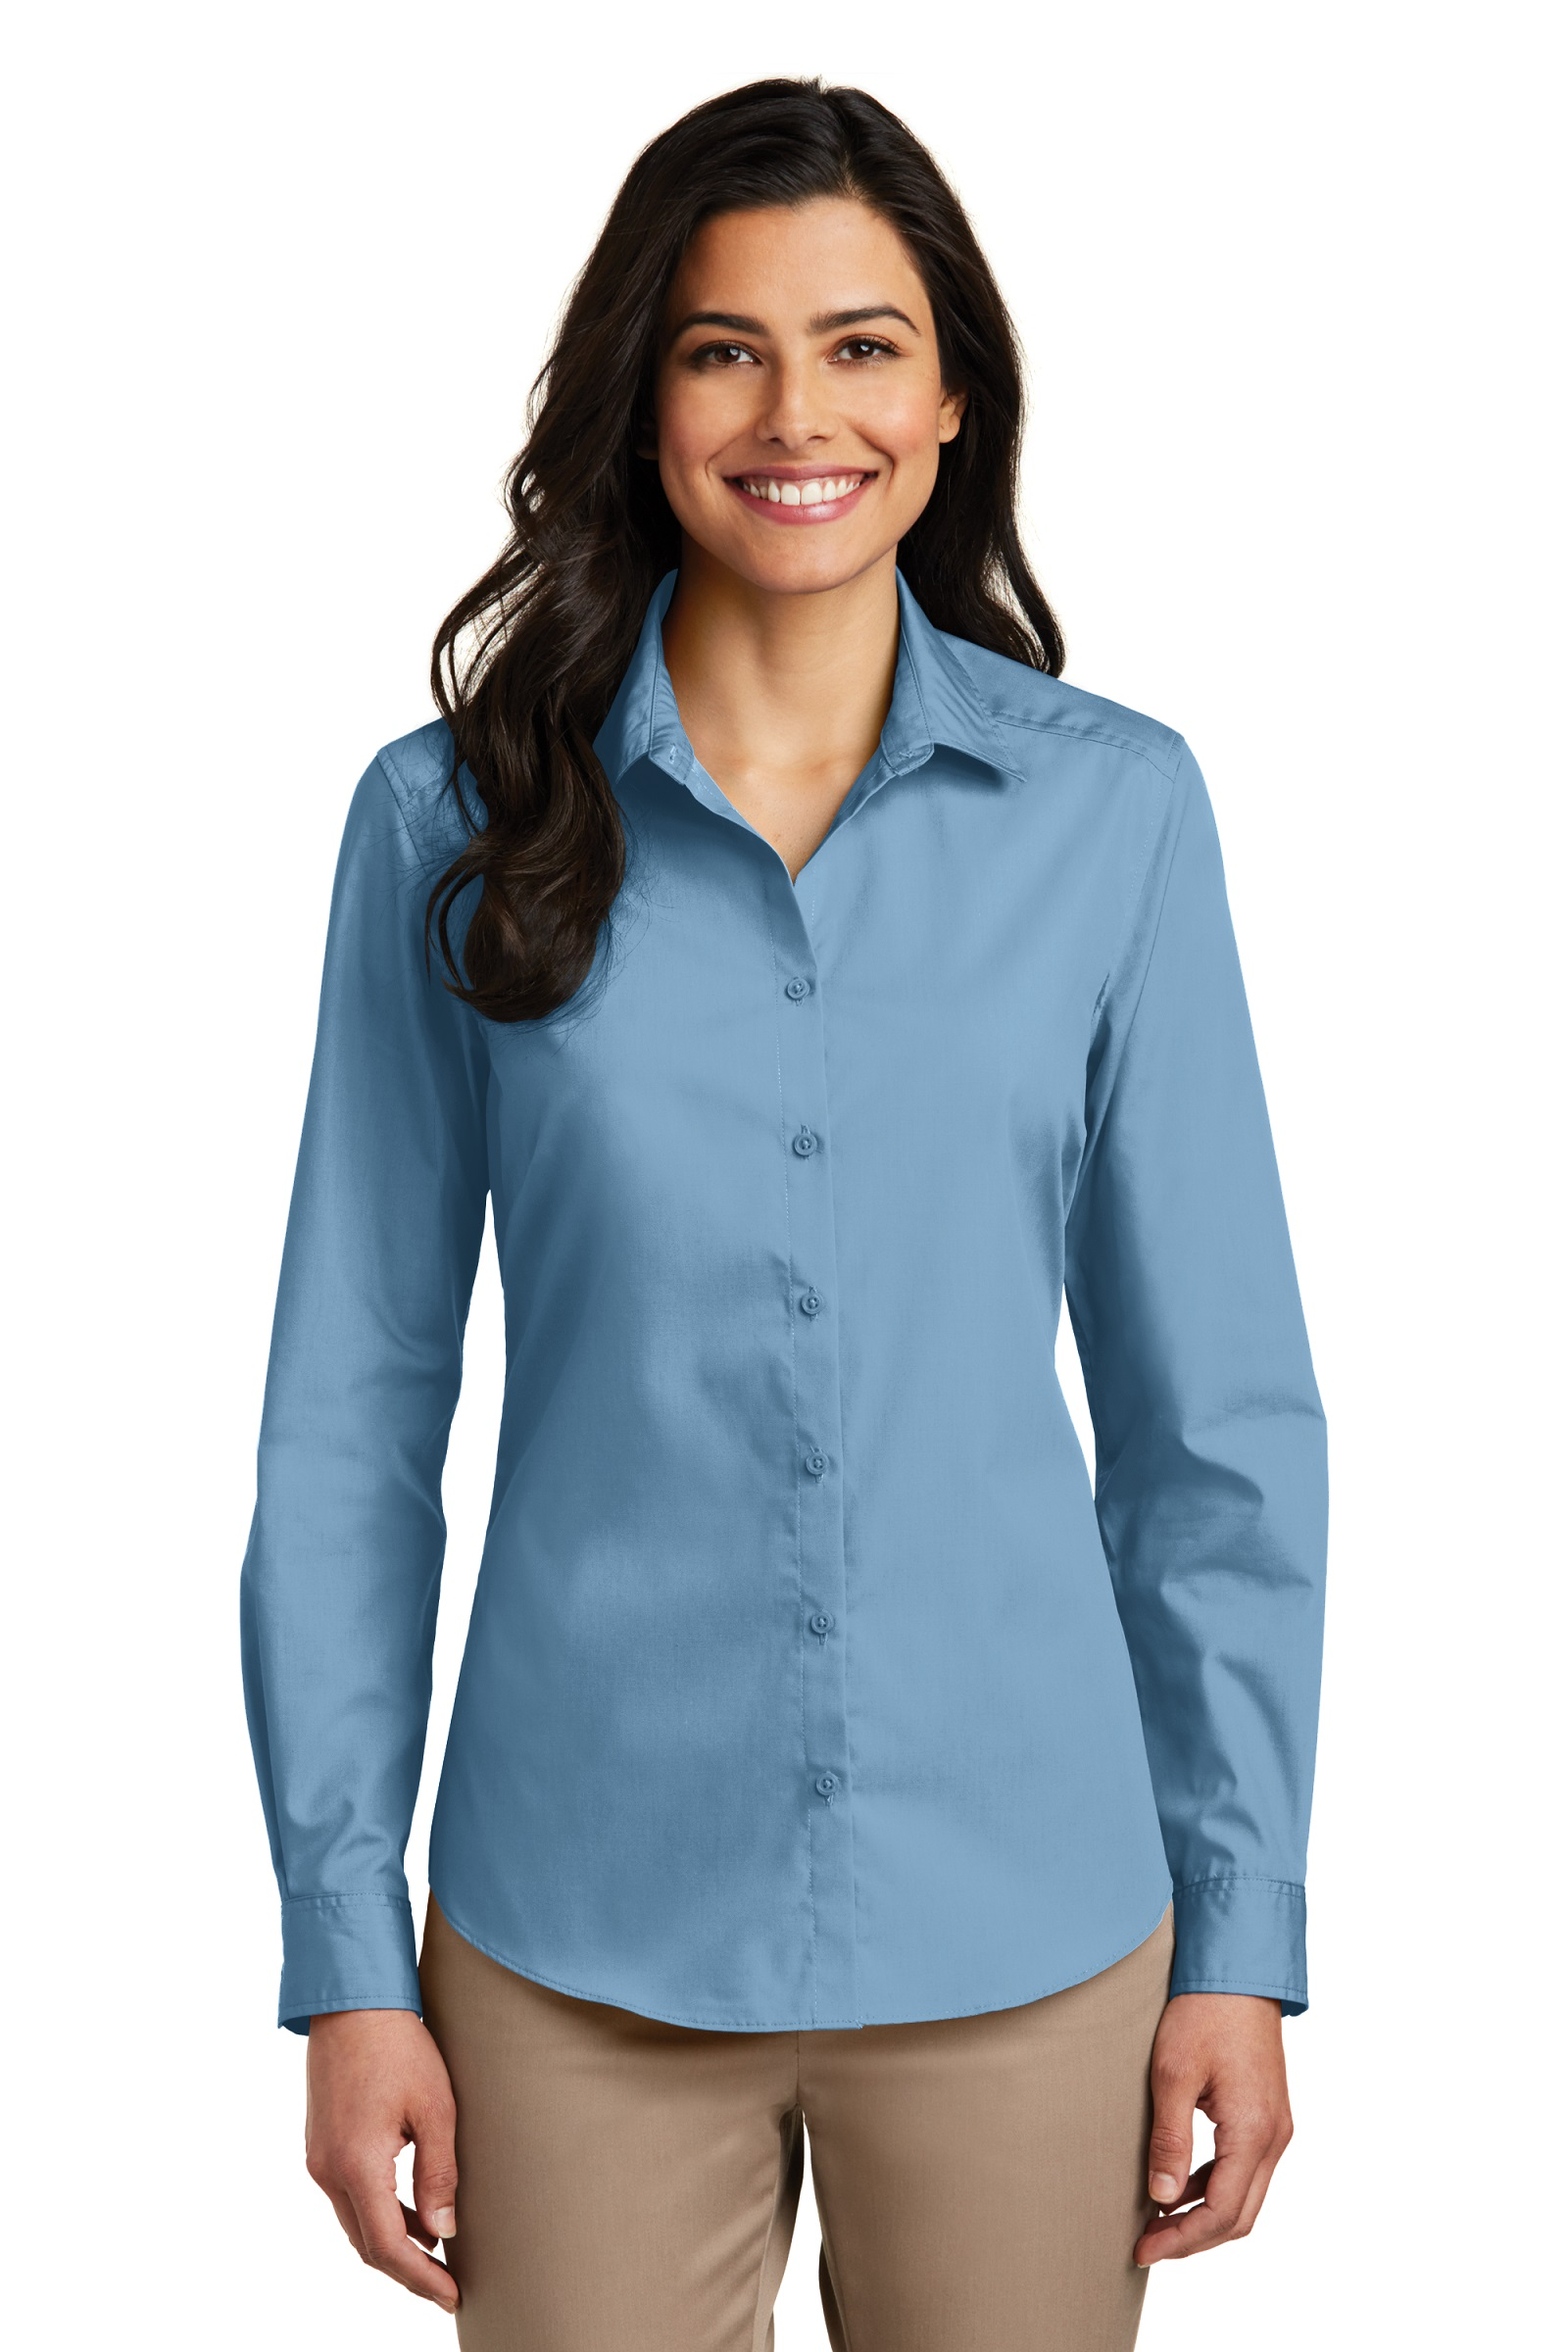 Port Authority Embroidered Women's Long Sleeve Carefree Poplin Shirt